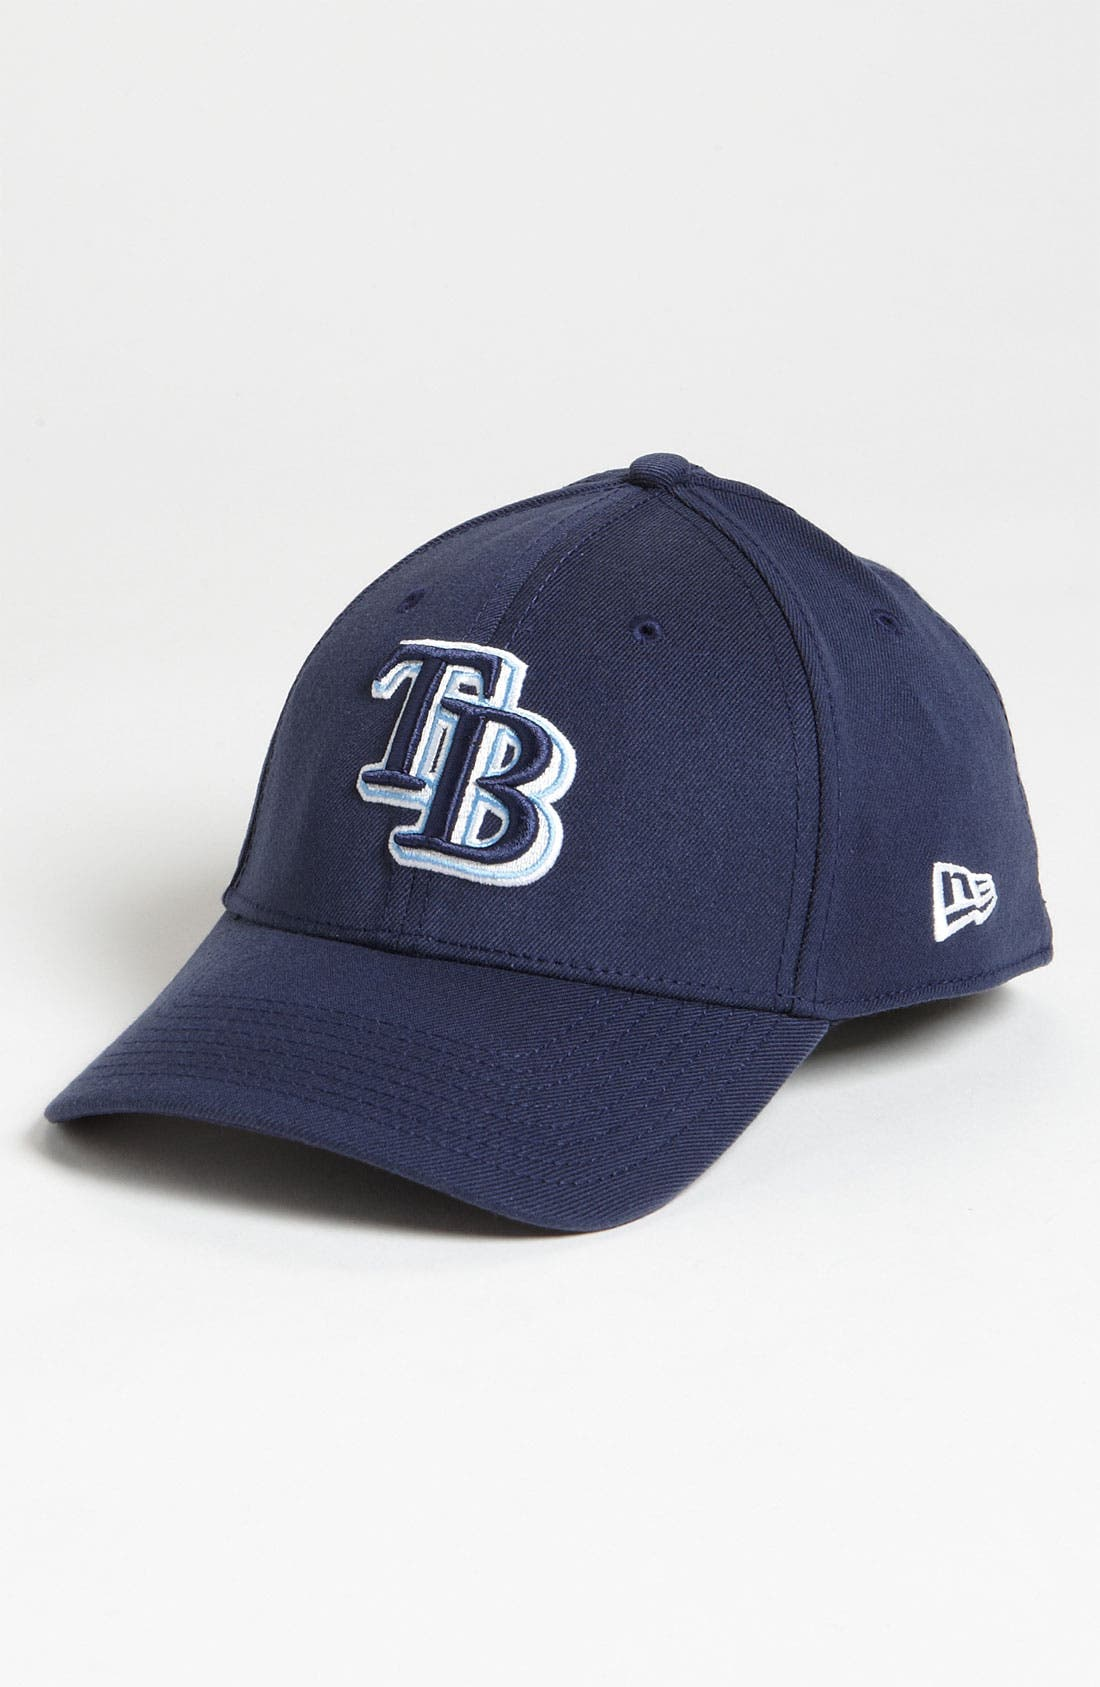 Main Image - New Era Cap 'Tampa Bay Rays' Baseball Cap